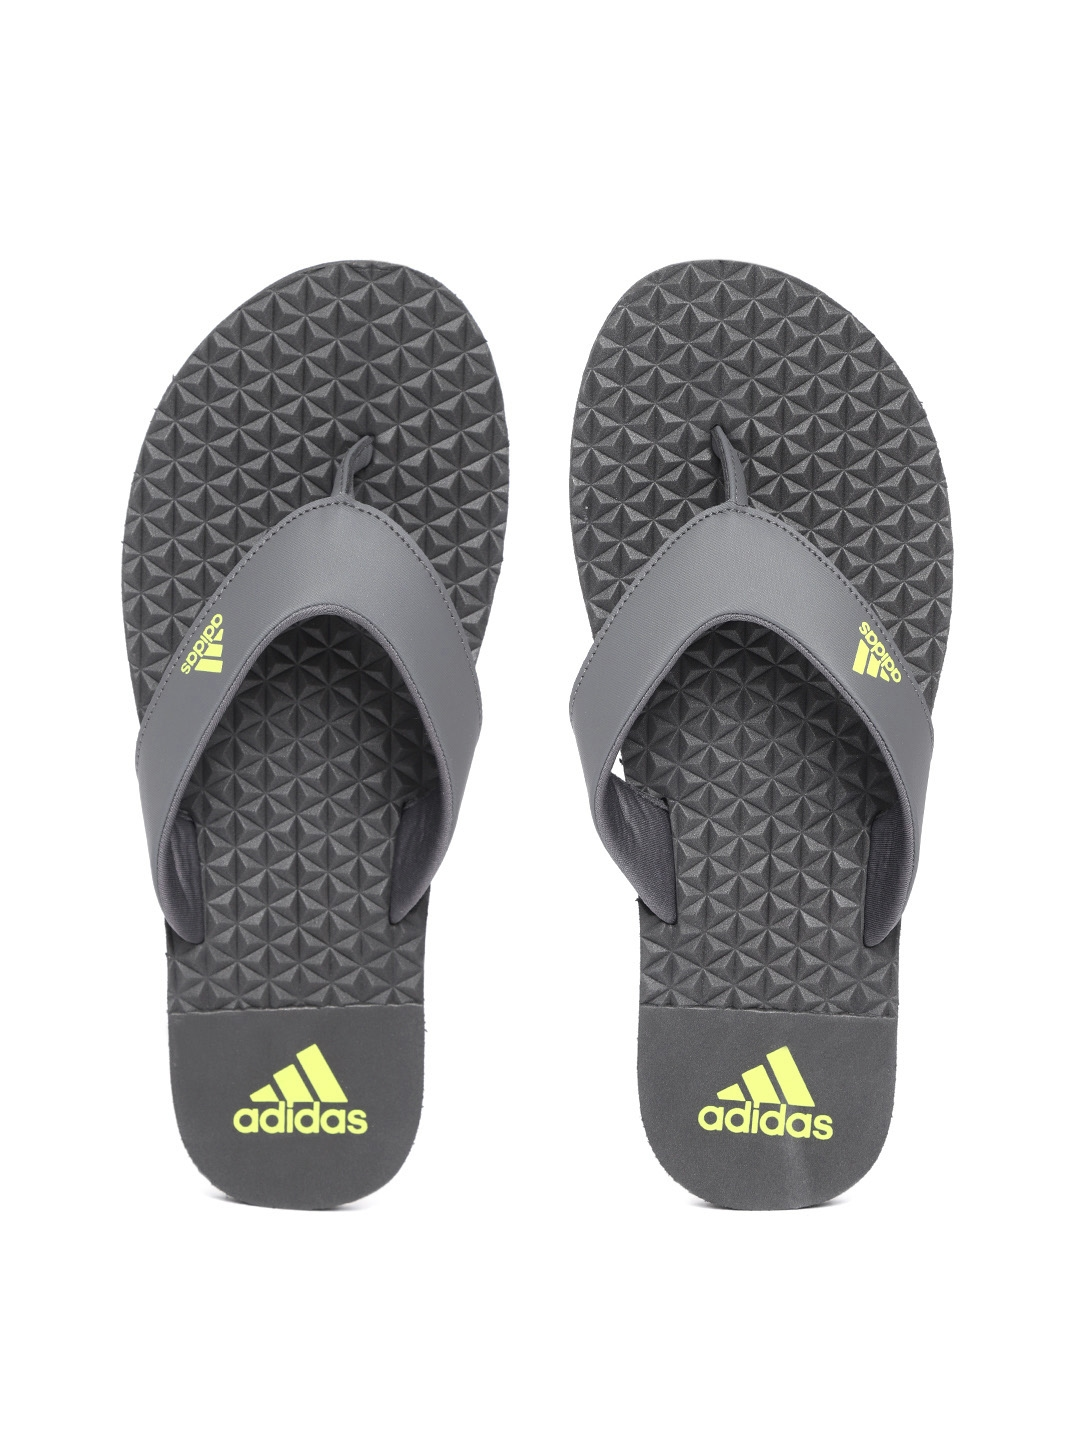 fa5551798052 Buy ADIDAS Men Charcoal Grey BISE Solid Thong Flip Flops - Flip ...